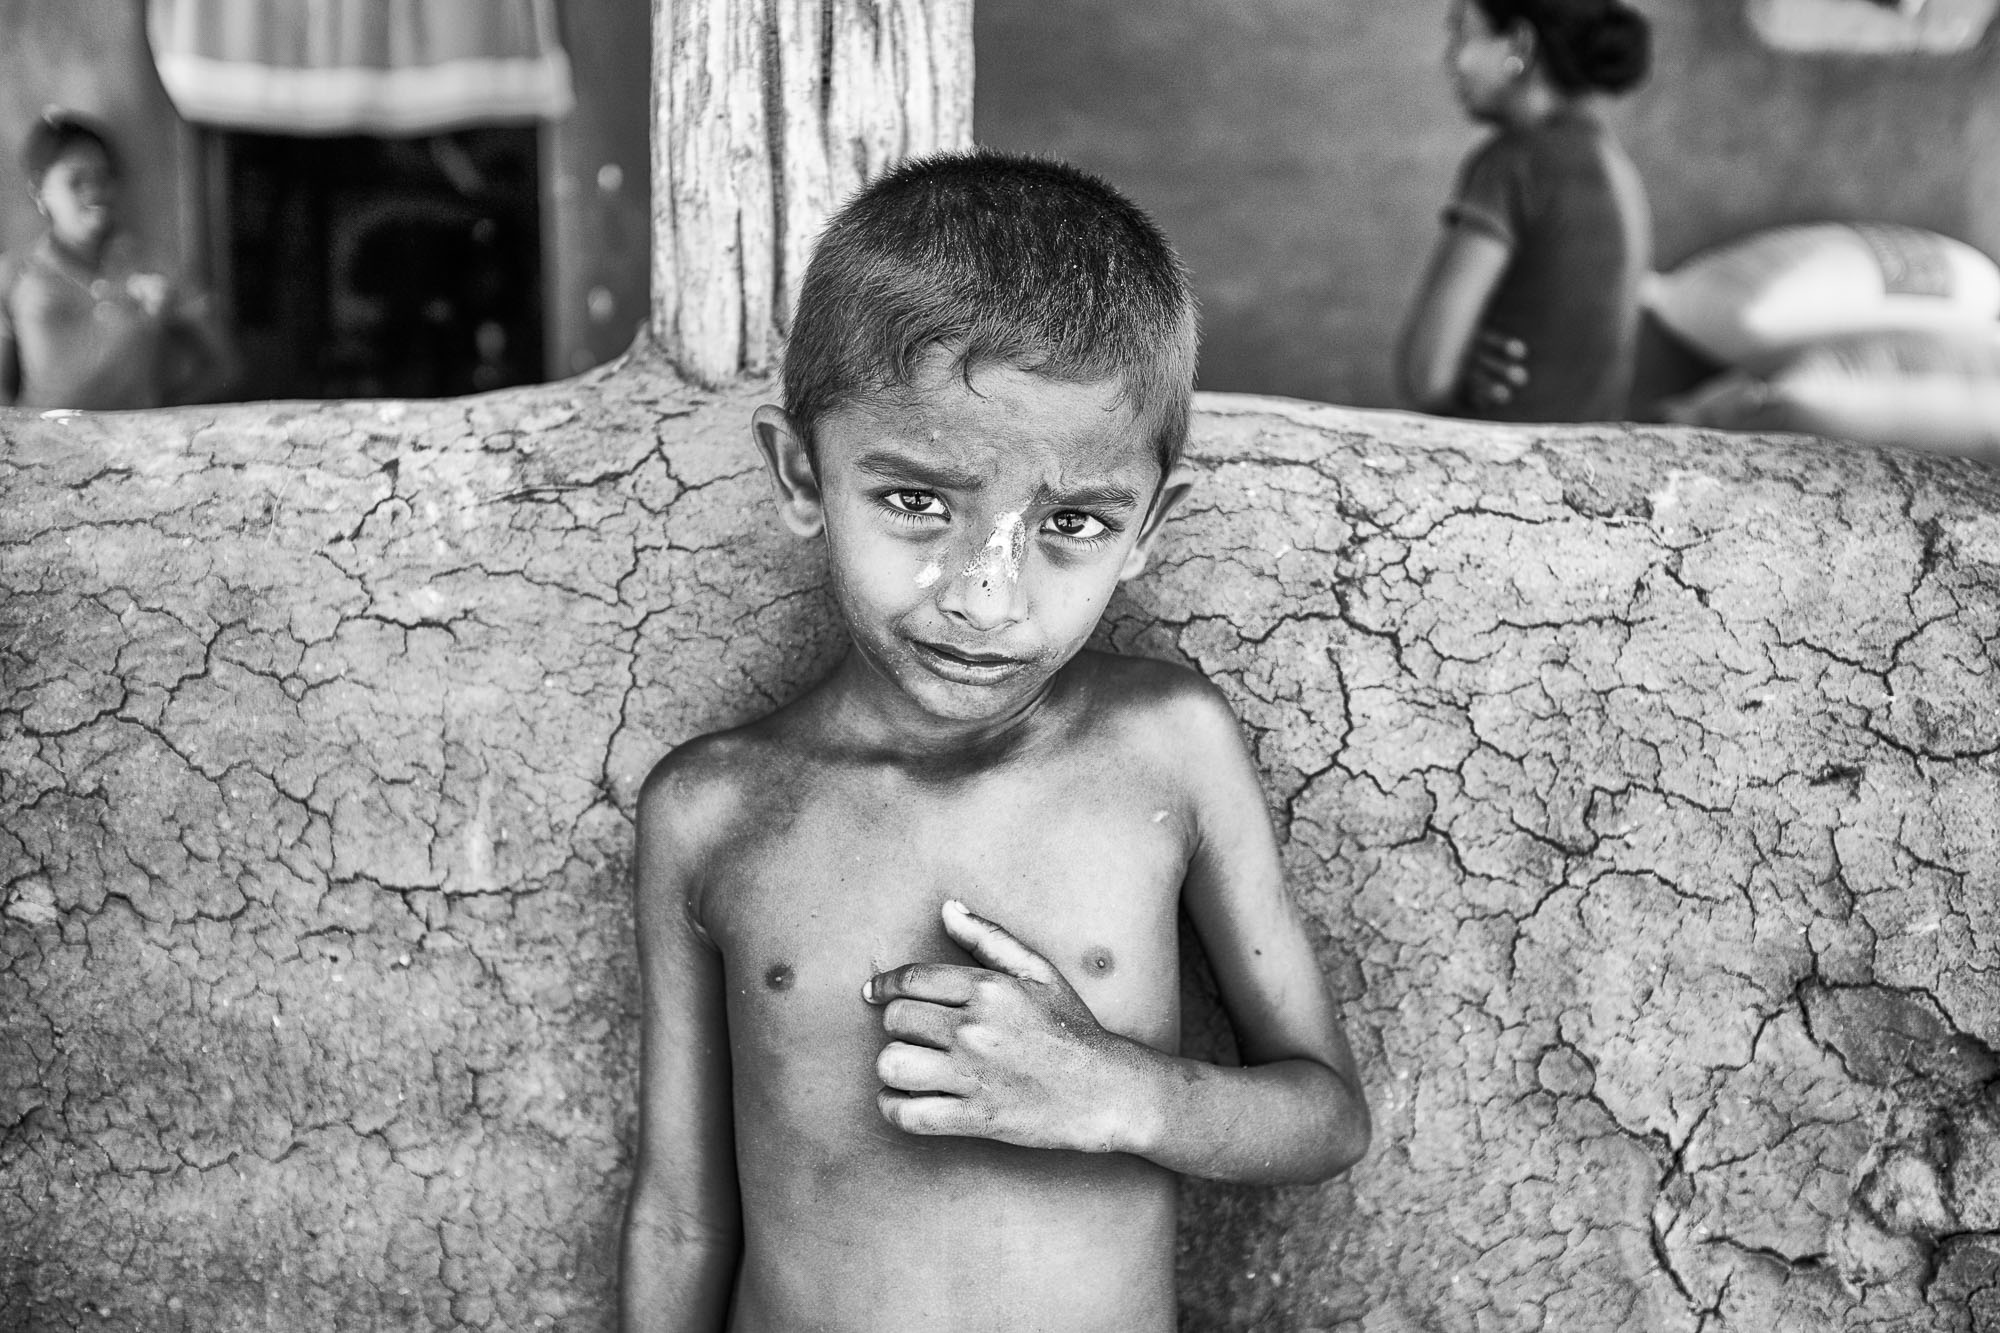 Vadda sri lanka indingenous group people photography - veddas photograph kid looking to the camera